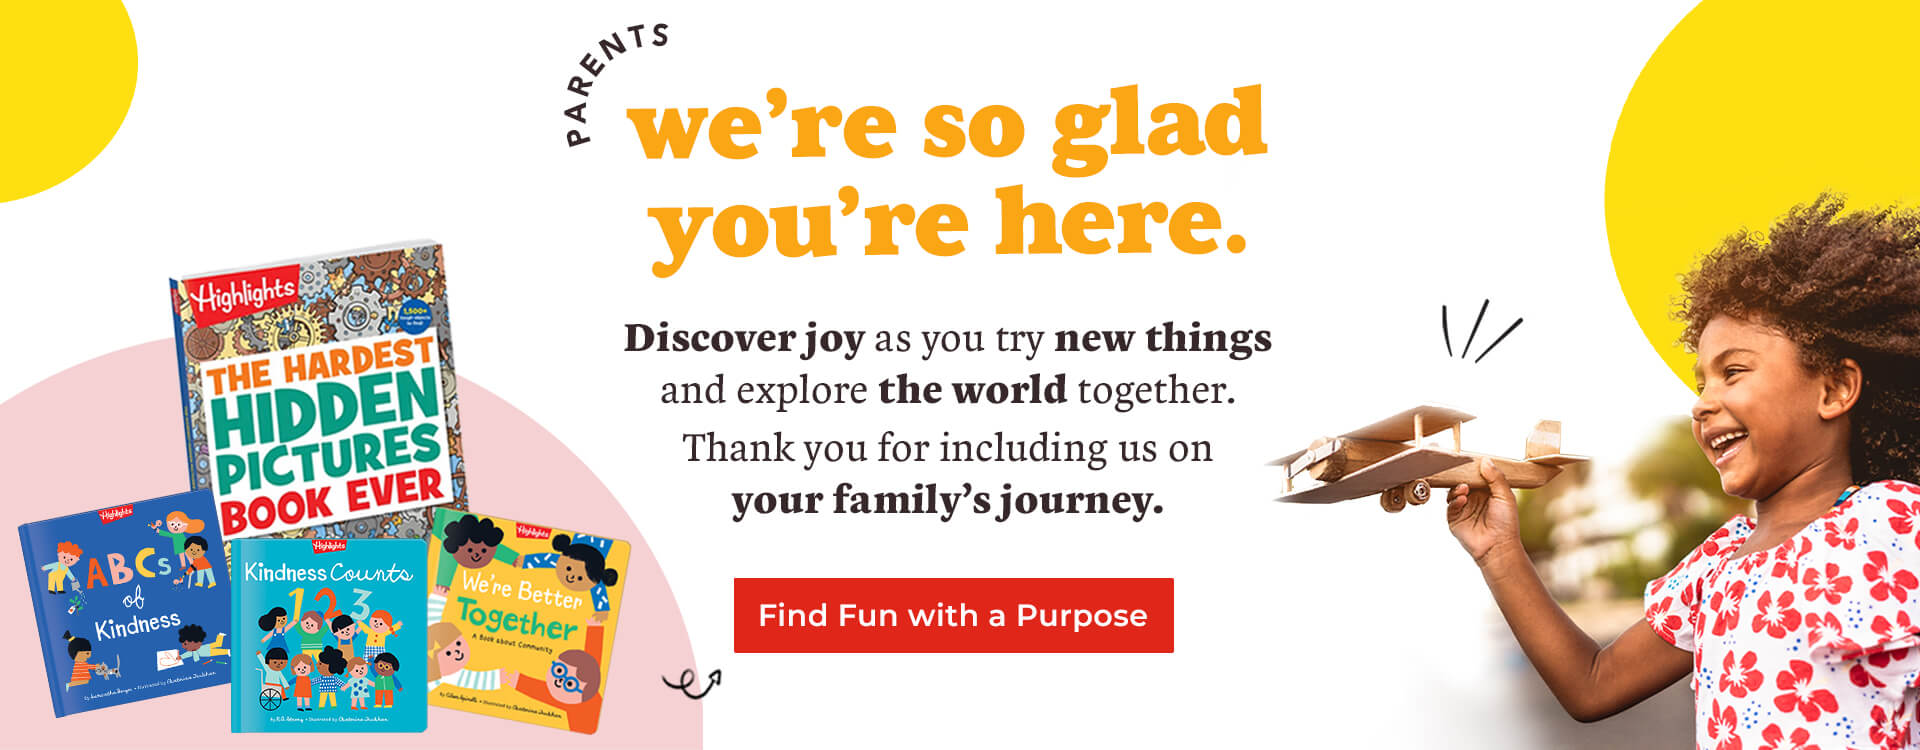 Find fun with a purpose for your family in our new arrival collection.